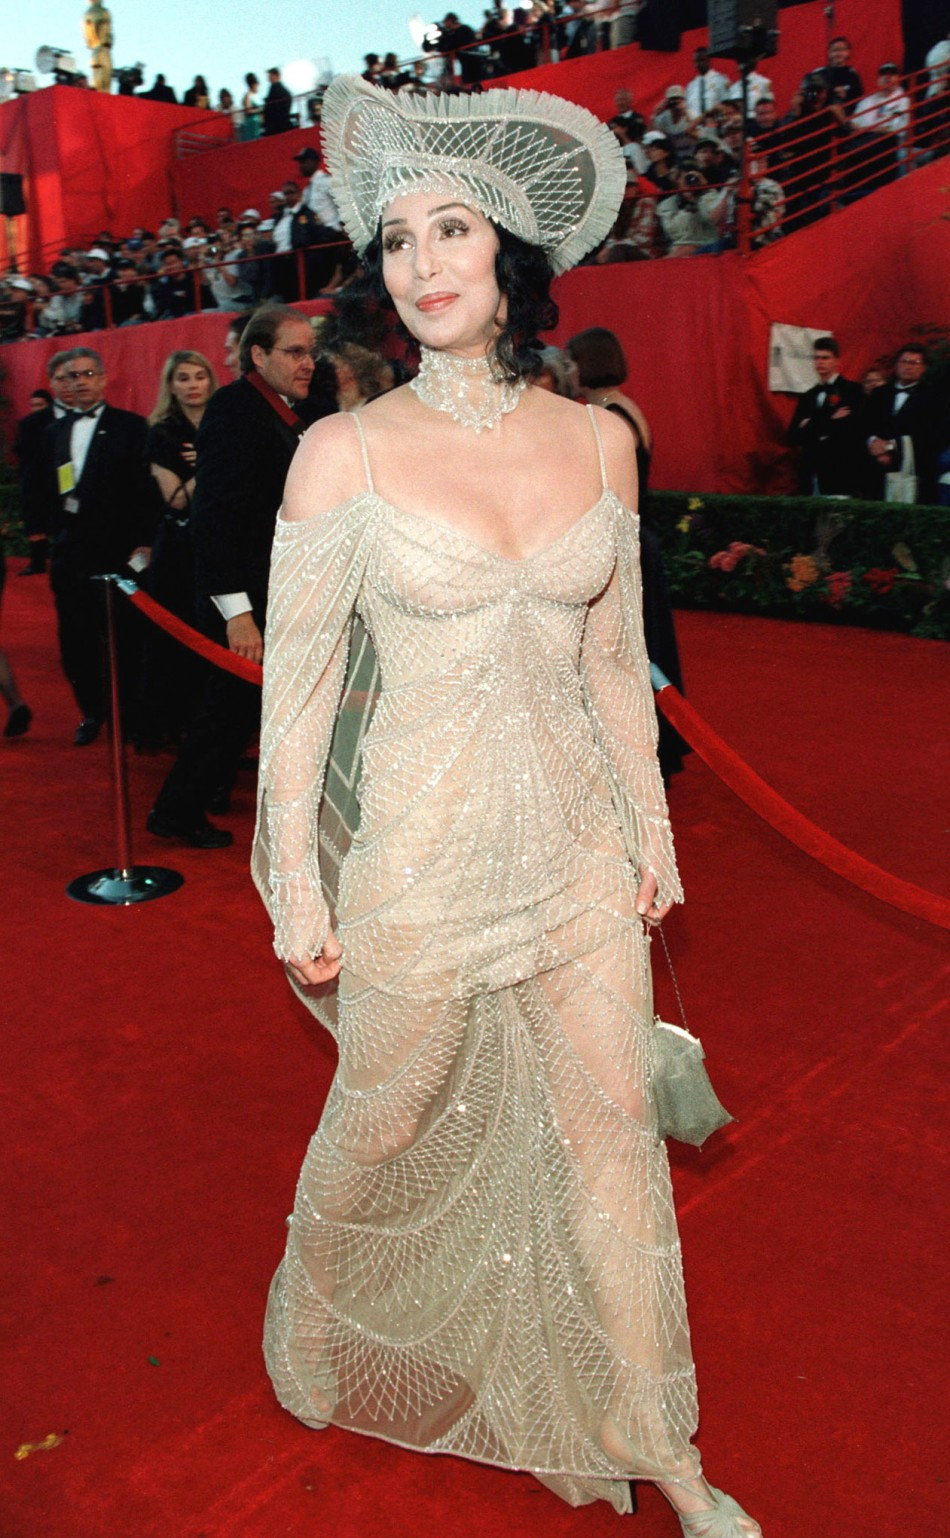 Wearing a Bob Macki gown, former Academy Award winner for best actress Cher arrives at the 70th annual Academy Awards at the Shrine Auditorium in Los Angeles March 23.